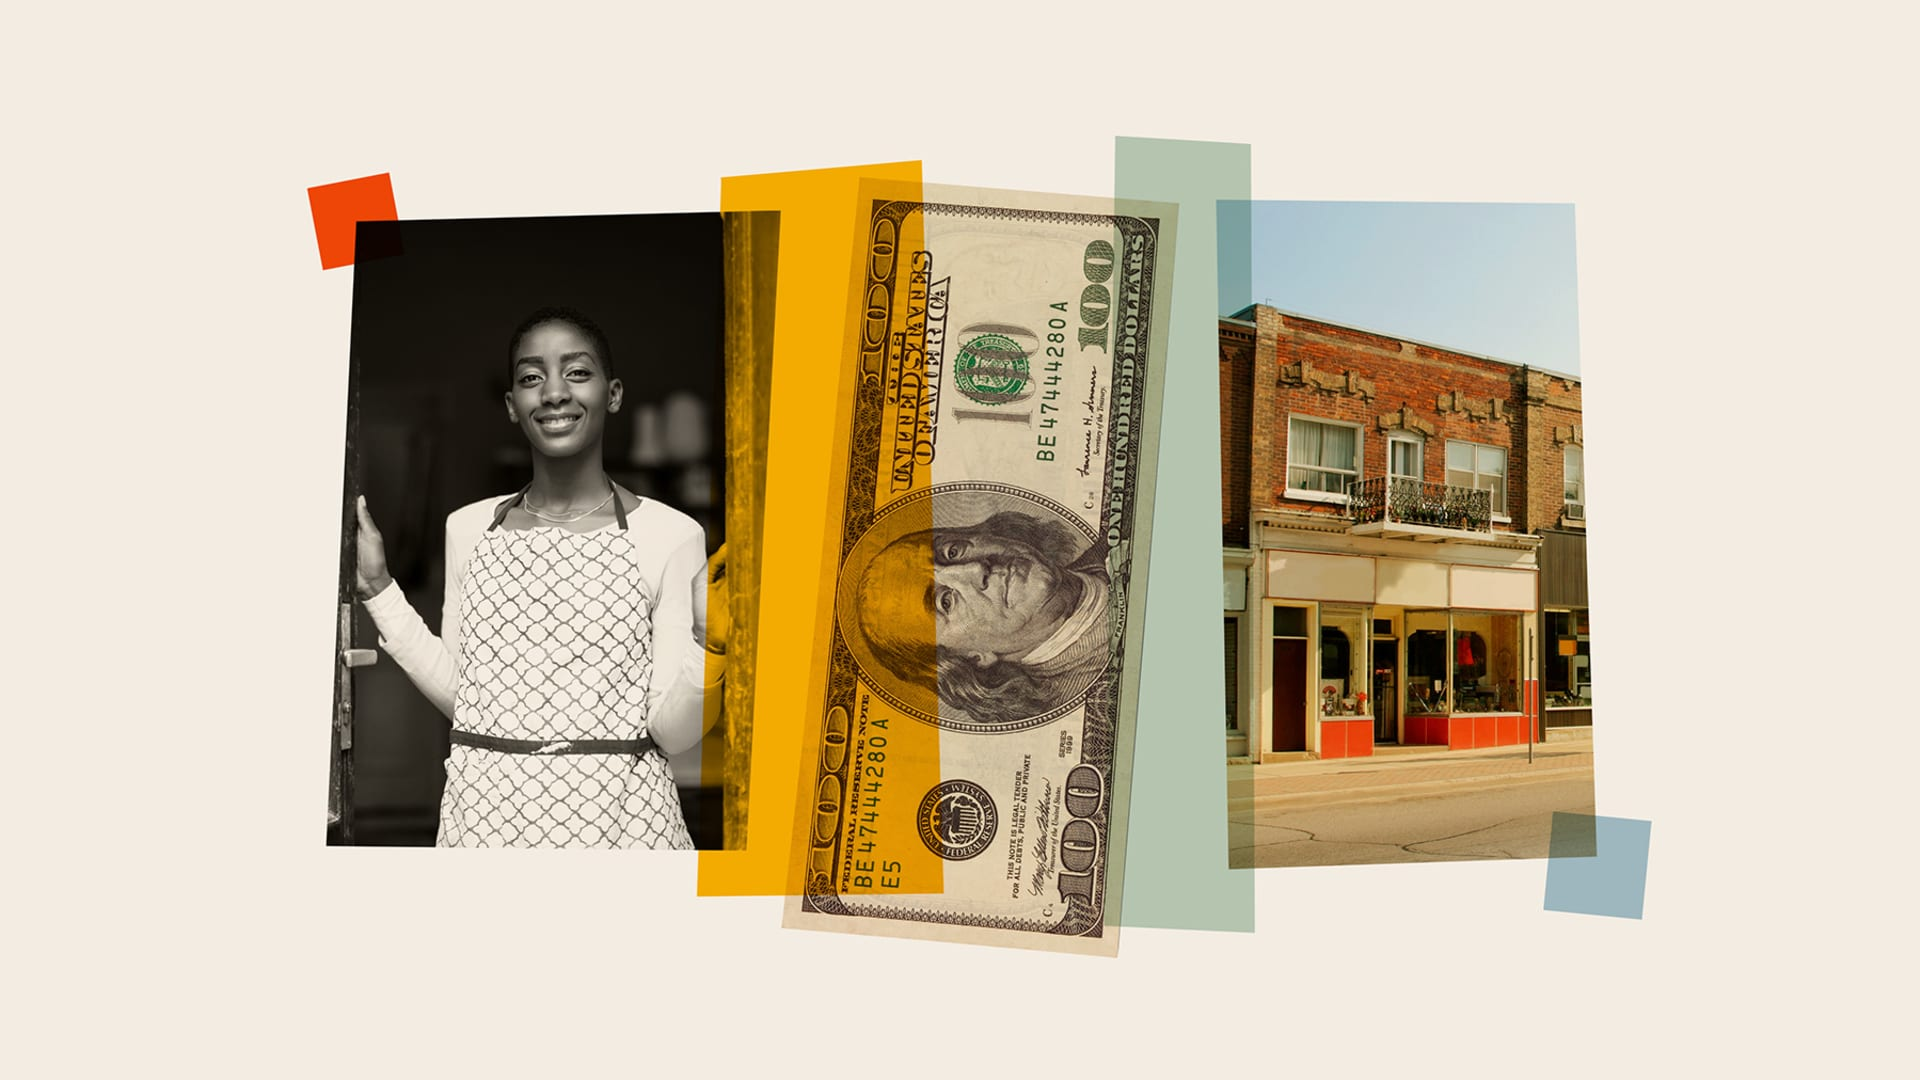 The PPP Might Provide More Help for Tiny and Minority-Owned Businesses This Time